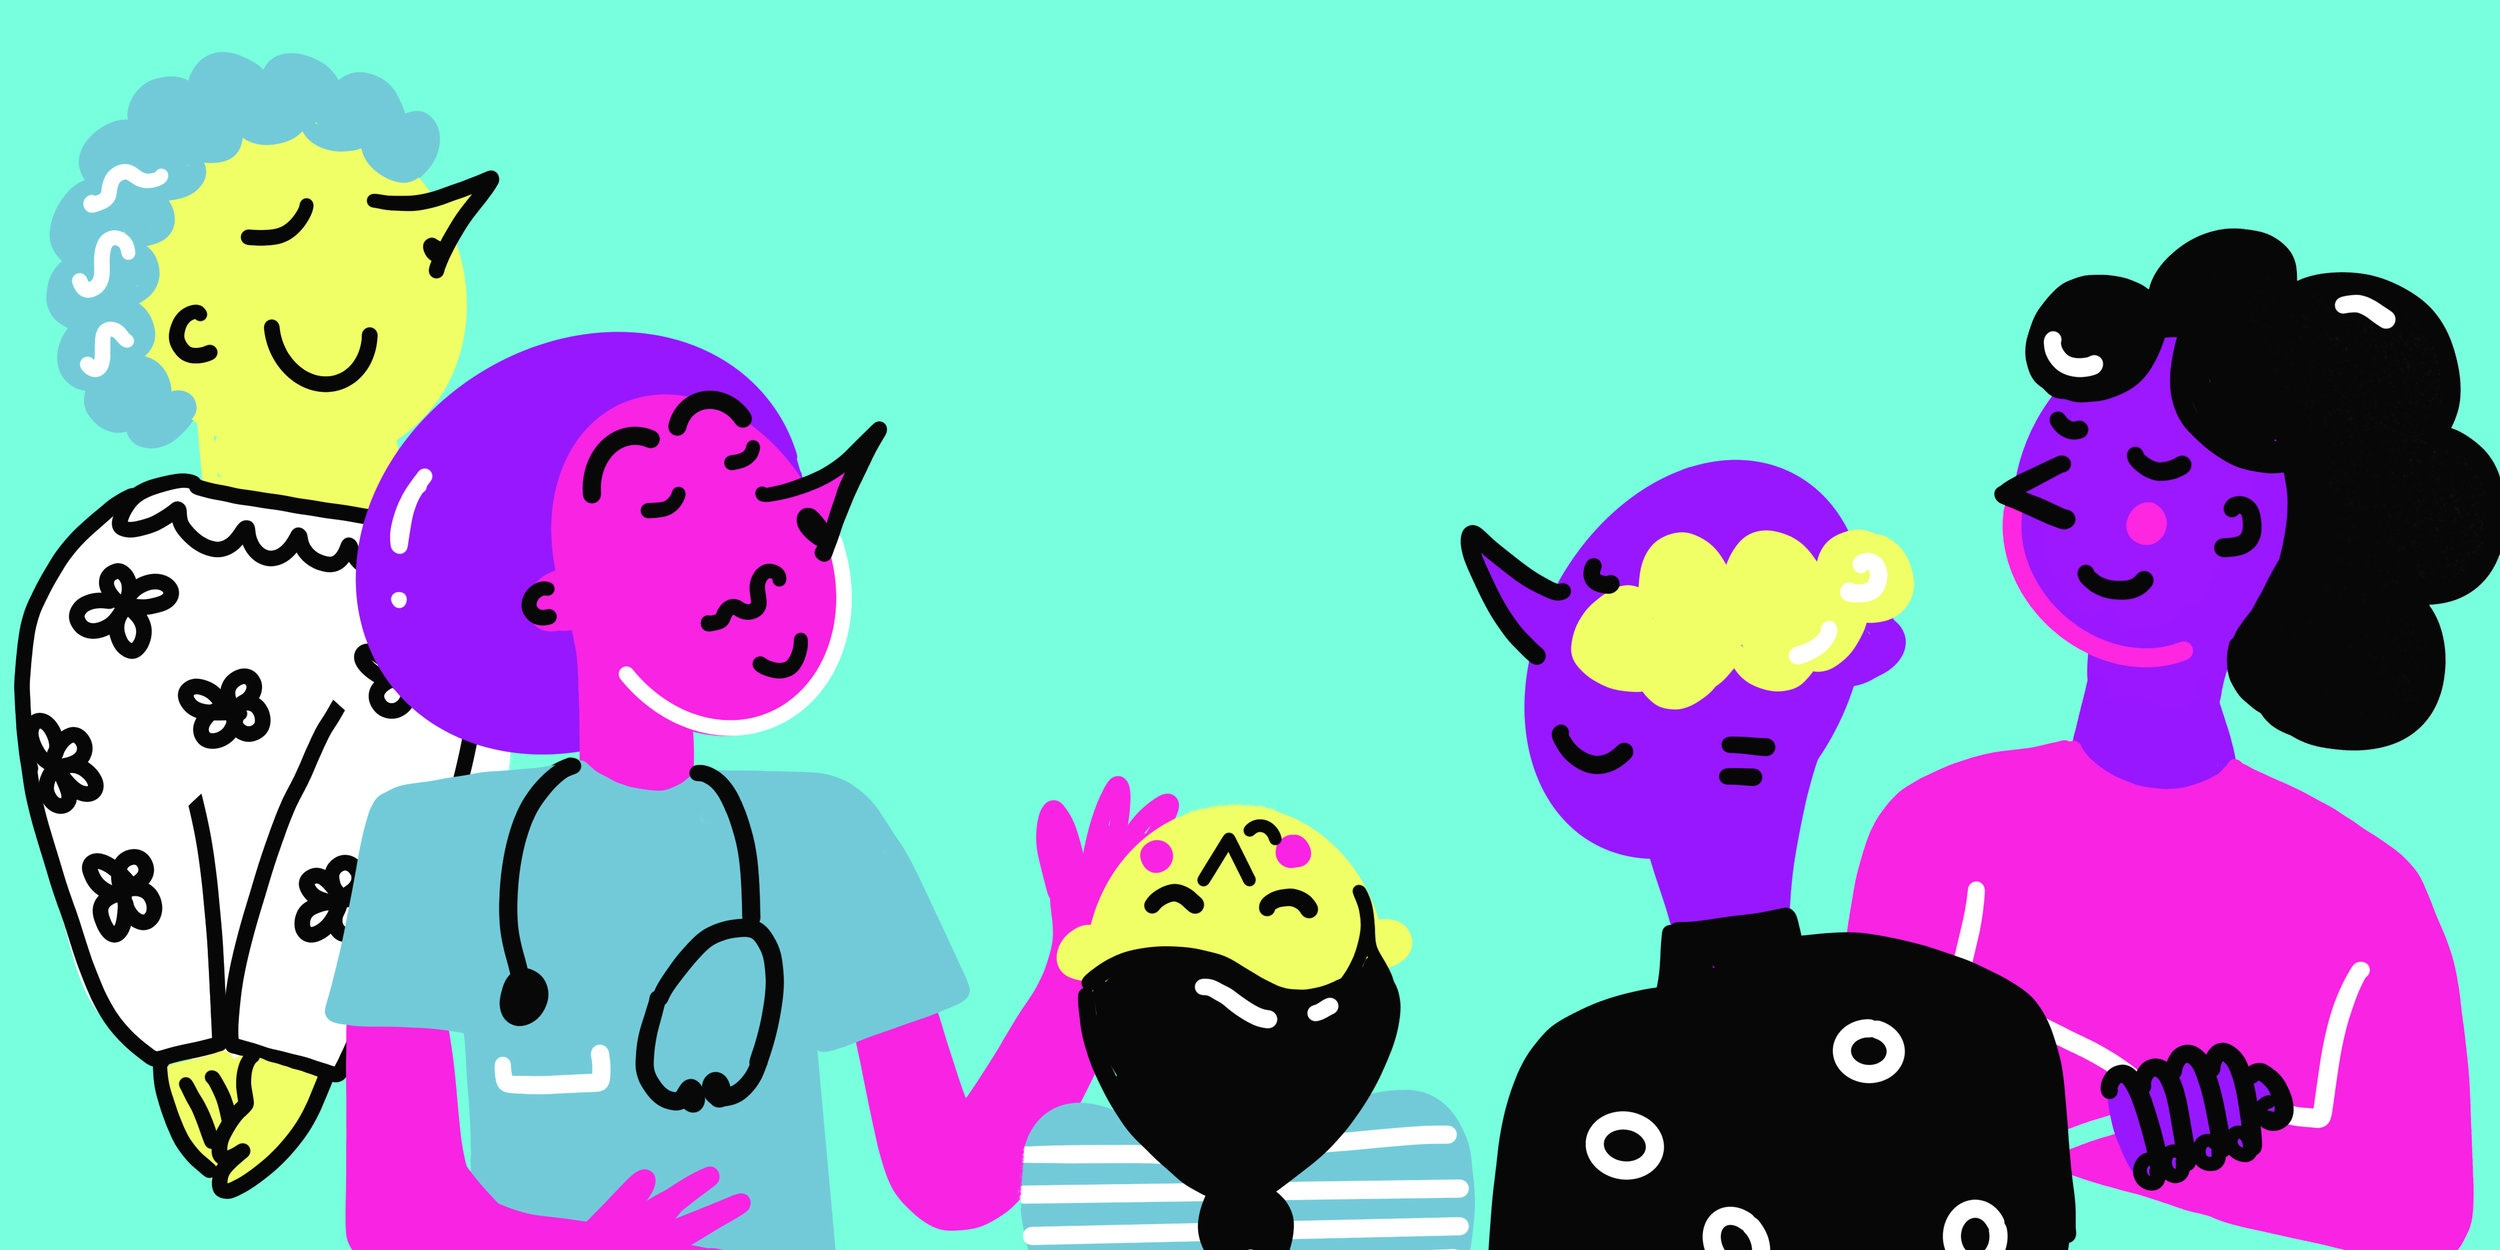 Five hand drawn characters smelling the air on a blue background